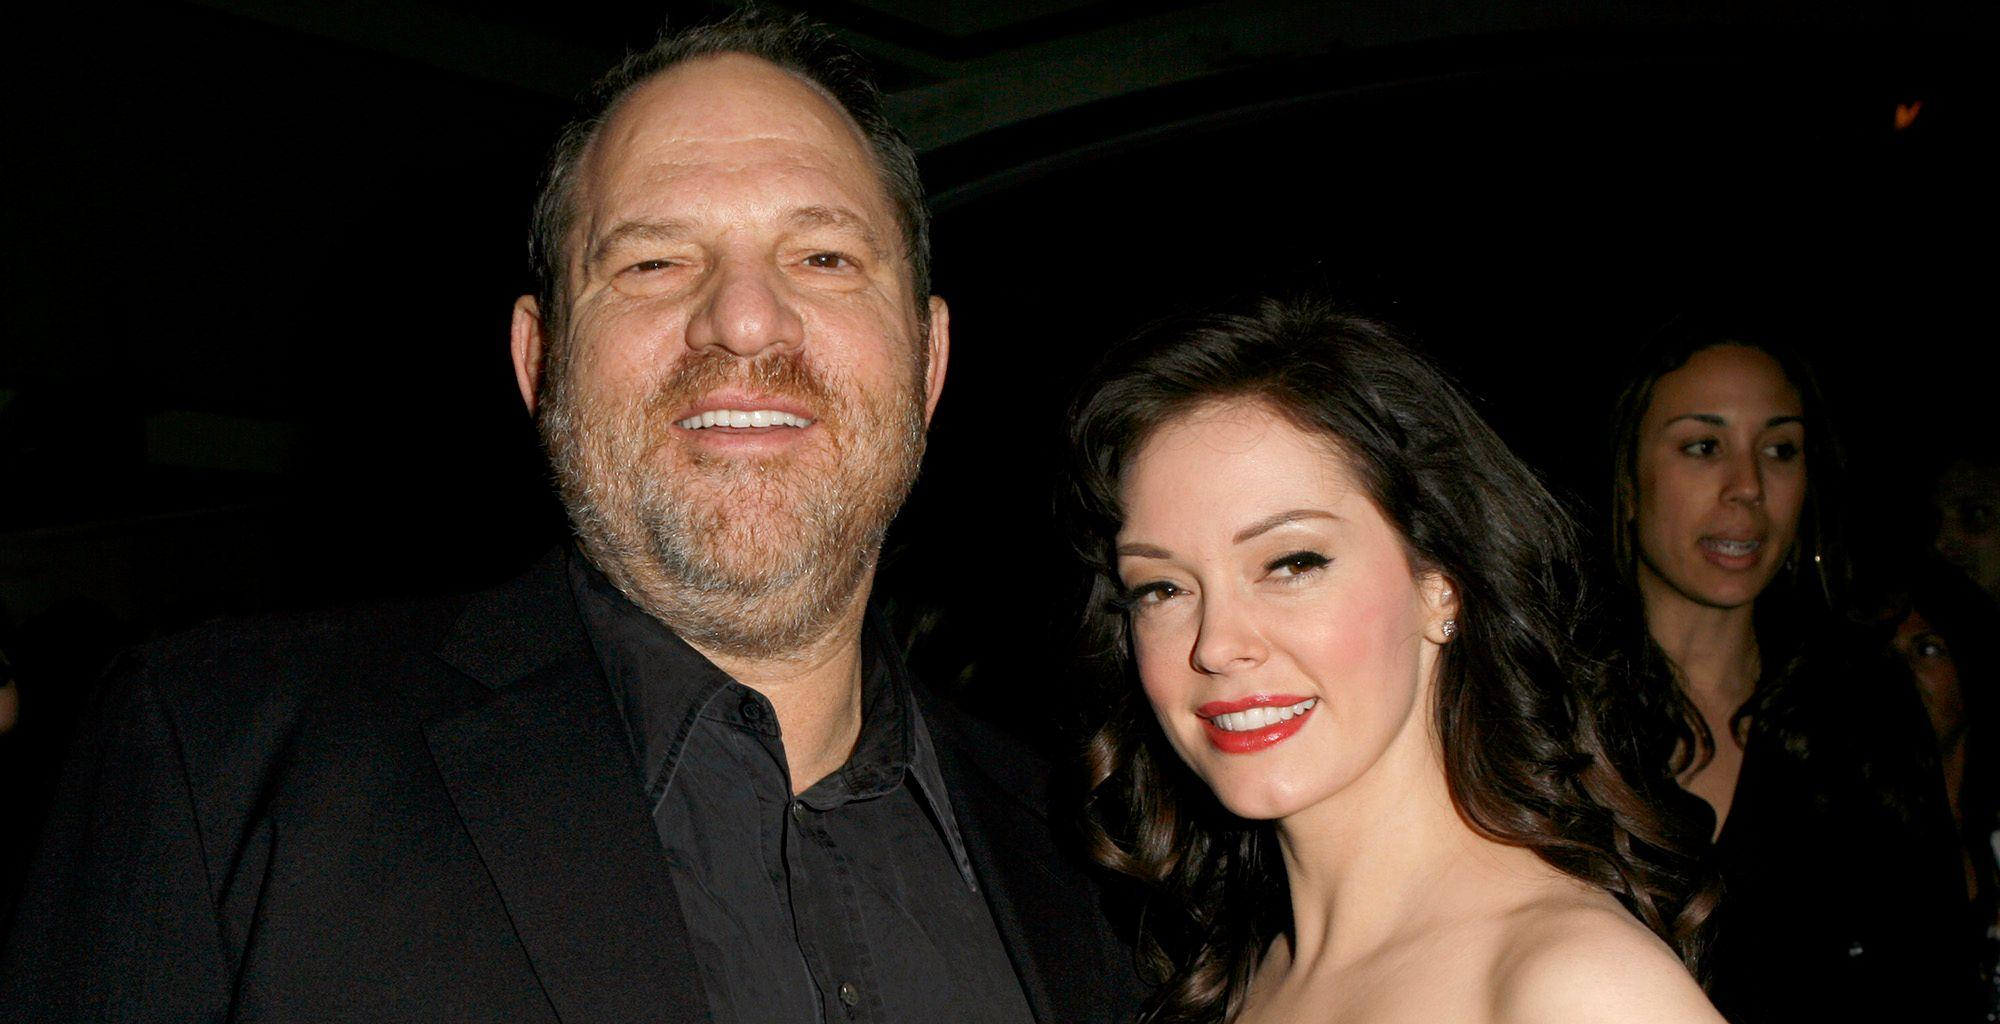 Rose McGowan Reacts To Her Rapist Harvey Weinstein's Sentence To 23 Years In Prison